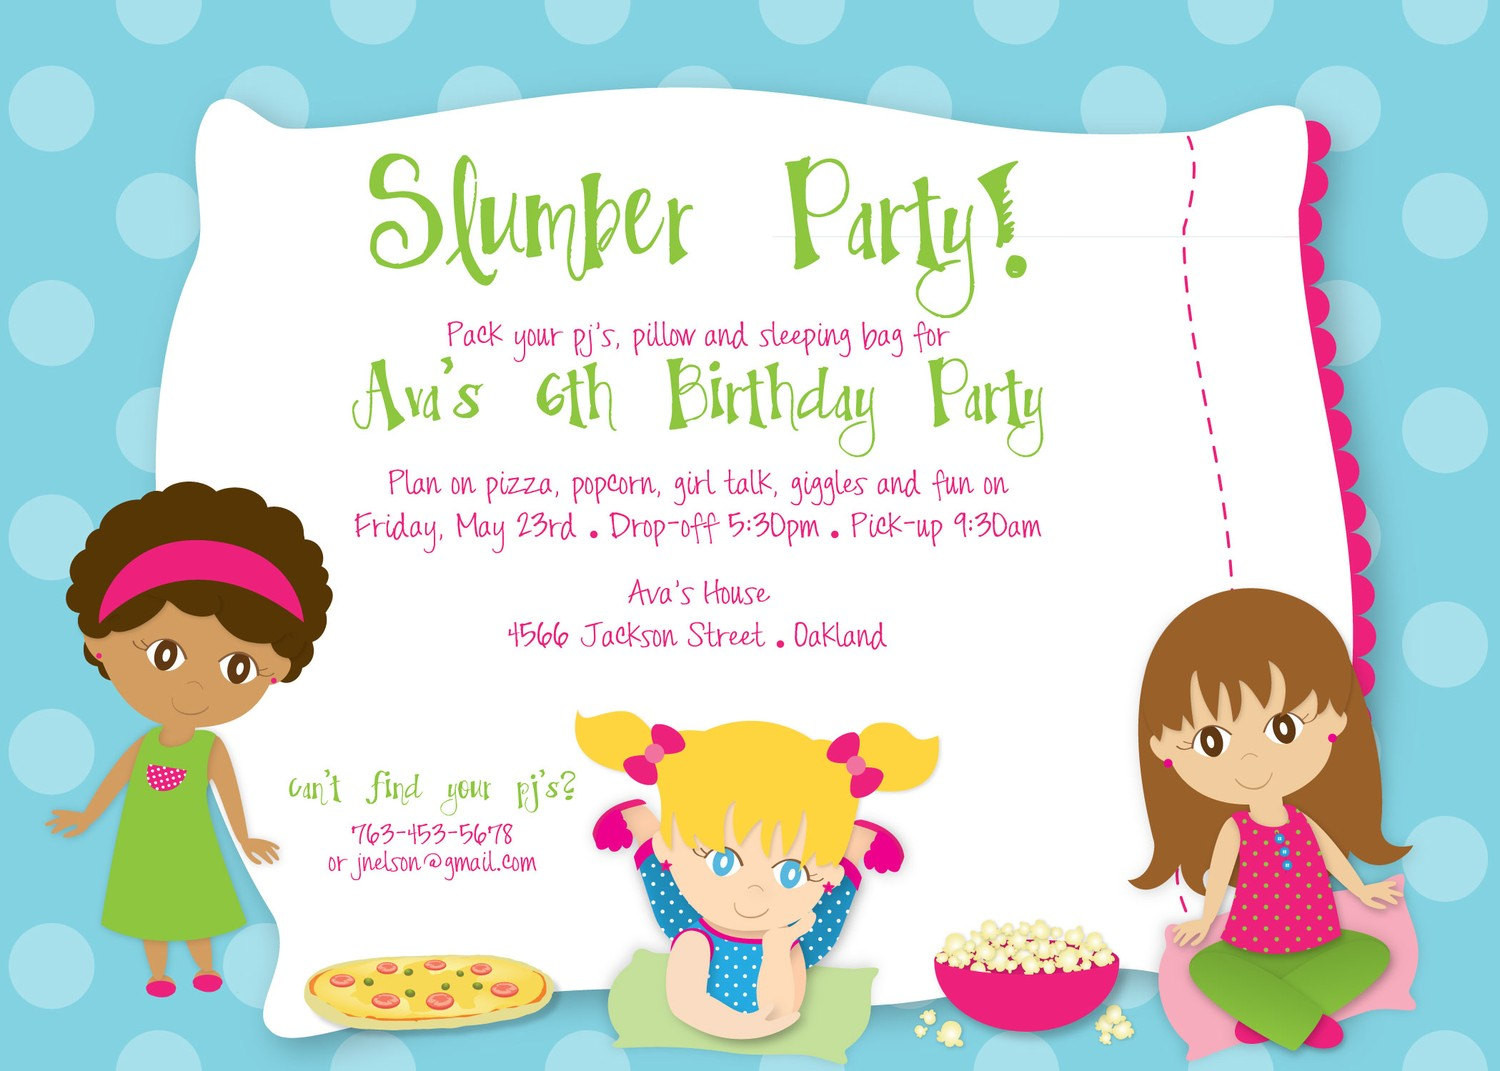 Best ideas about Sleepover Birthday Party . Save or Pin Slumber Party Birthday Custom DIGITAL by KimNelsonCreative Now.